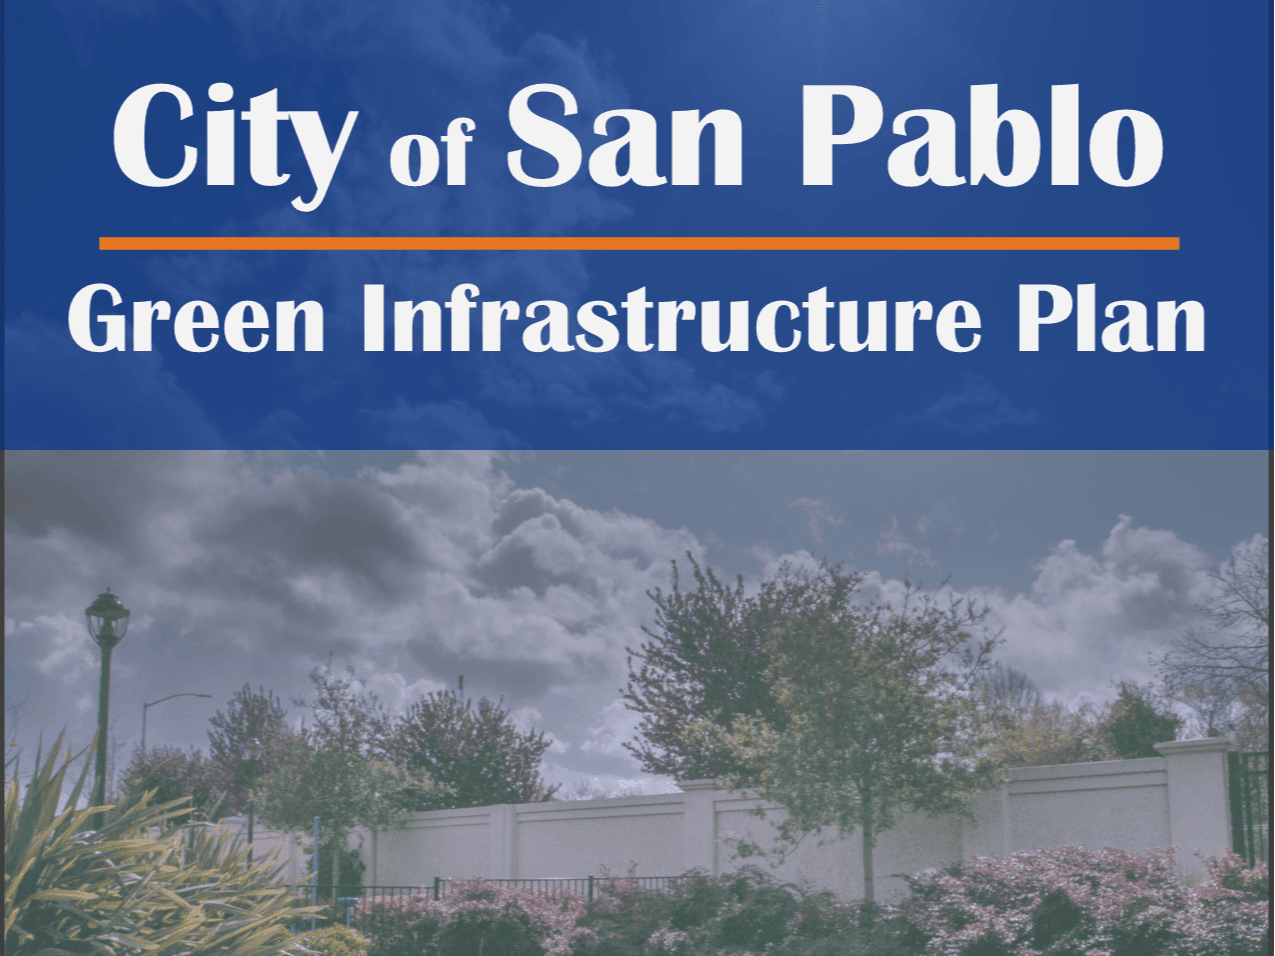 Cover of the City of San Pablo Green Infrastructure Plan / El forro del Plan de Infraestructura Verd